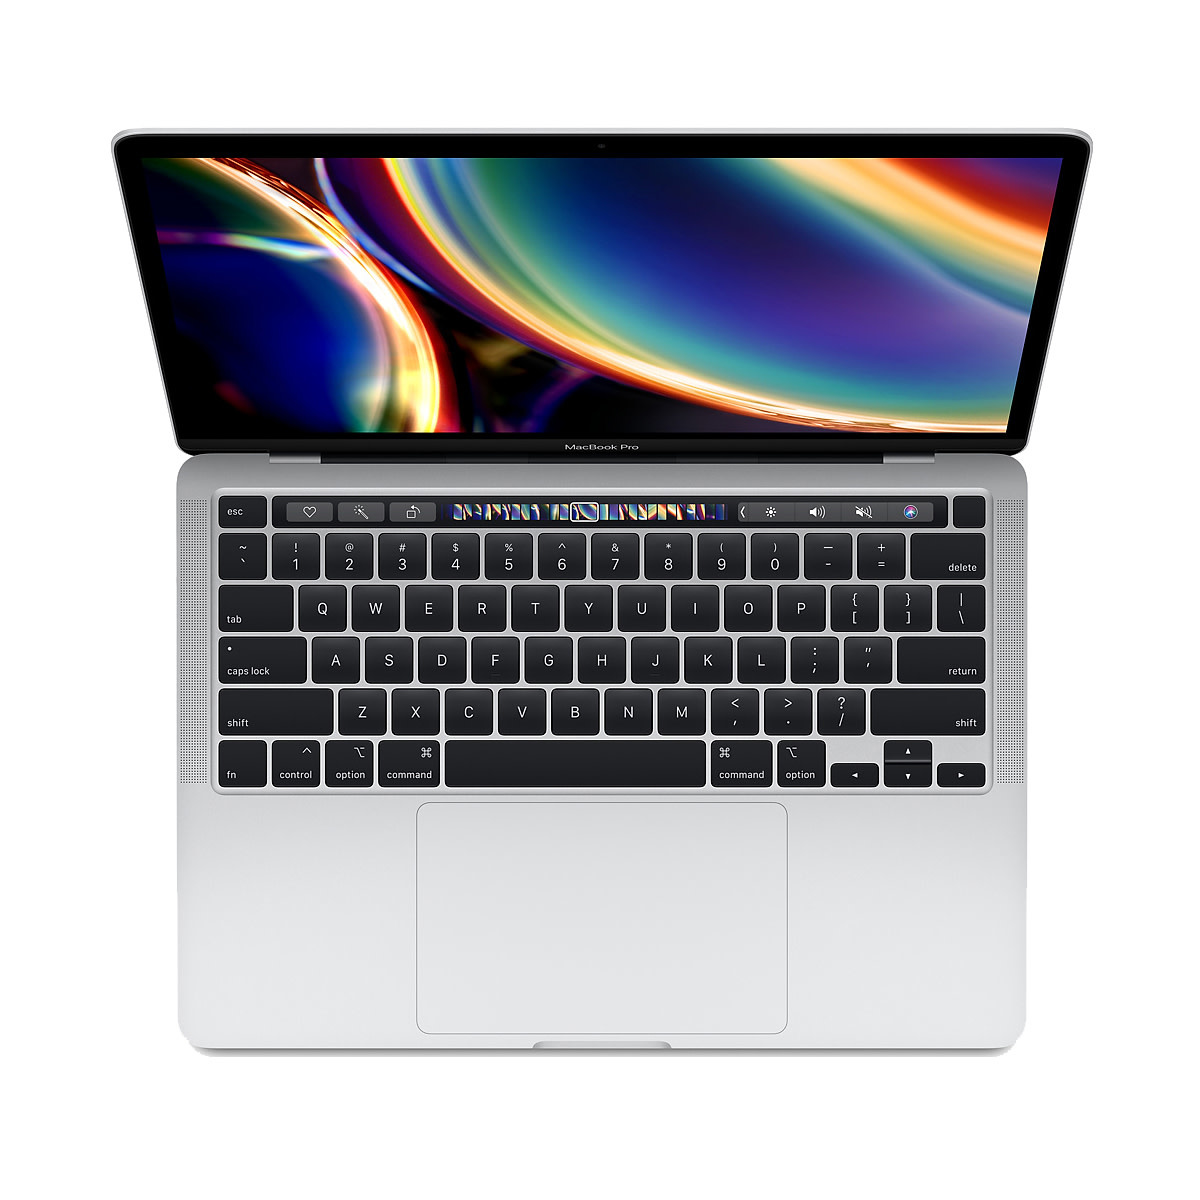 Apple 13-inch MacBook Pro- Silver: Apple M1 chip with 8‑core CPU and 8‑core GPU, 512GB SSD - Silver 16-core Neural Engine//8GB unified memory